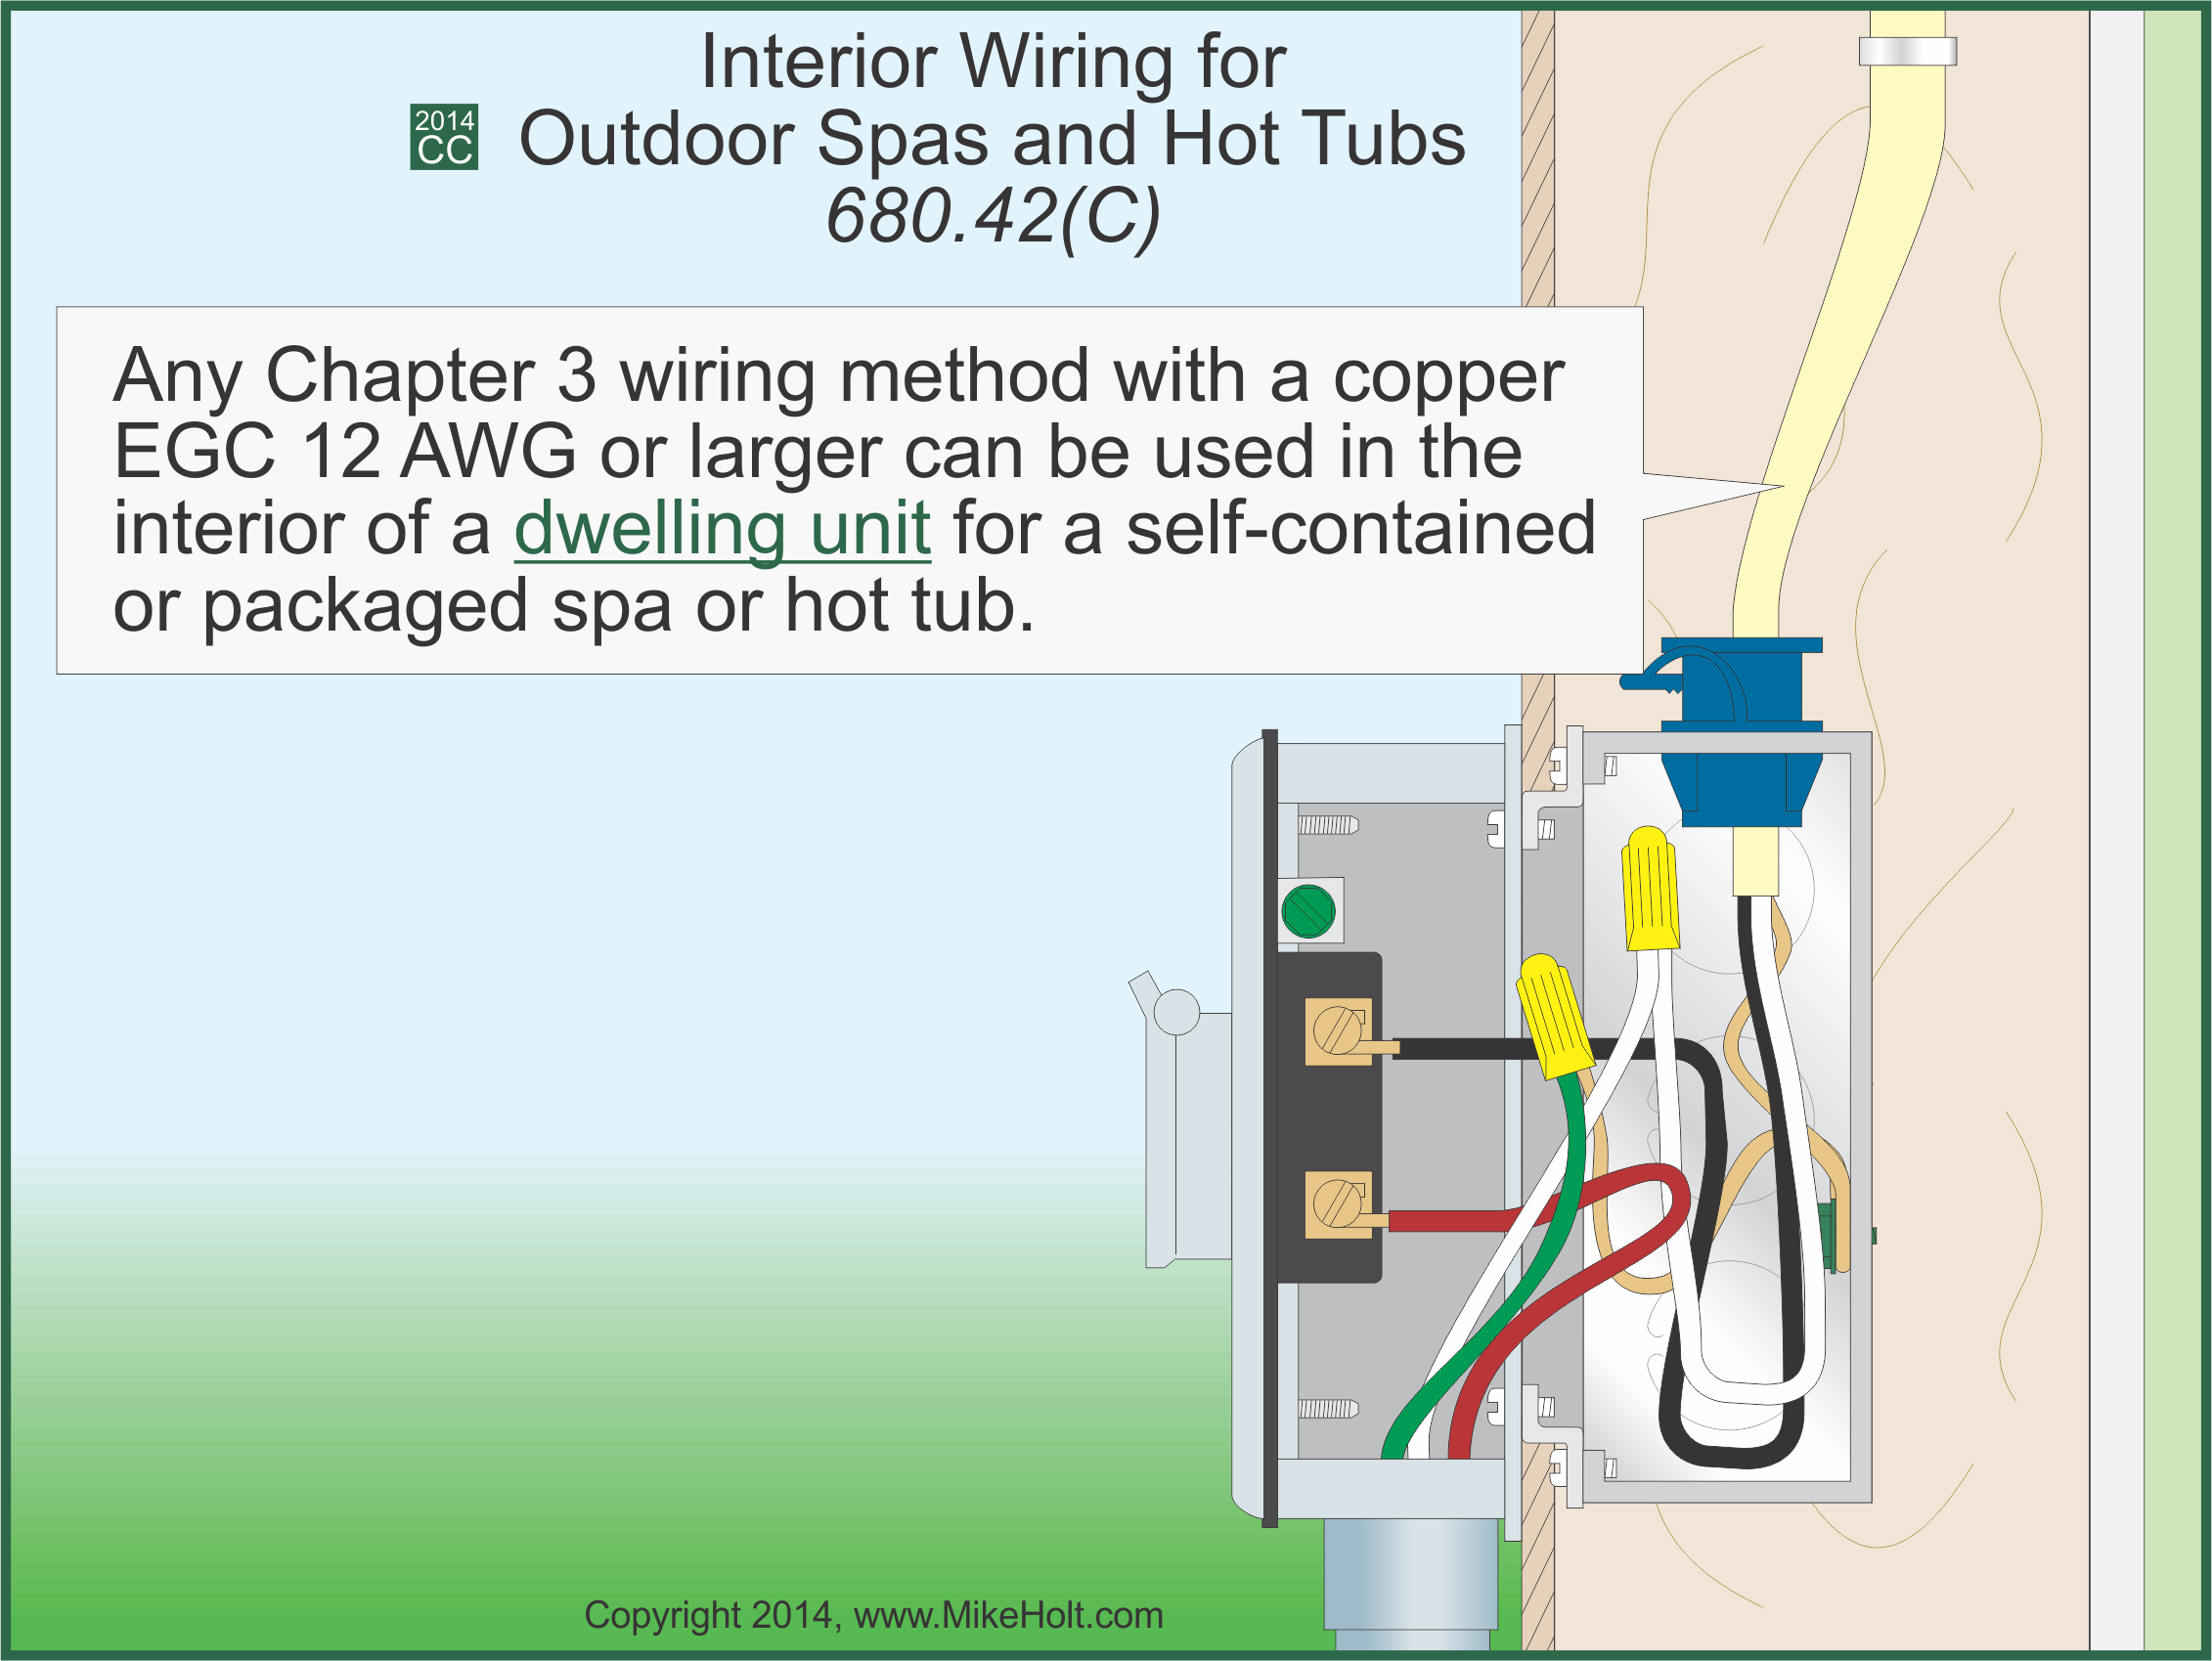 mike holt s understanding the national electrical code volumes 1 and 2 rh mikeholt com nec class 1 wiring methods greenhouse wiring methods nec